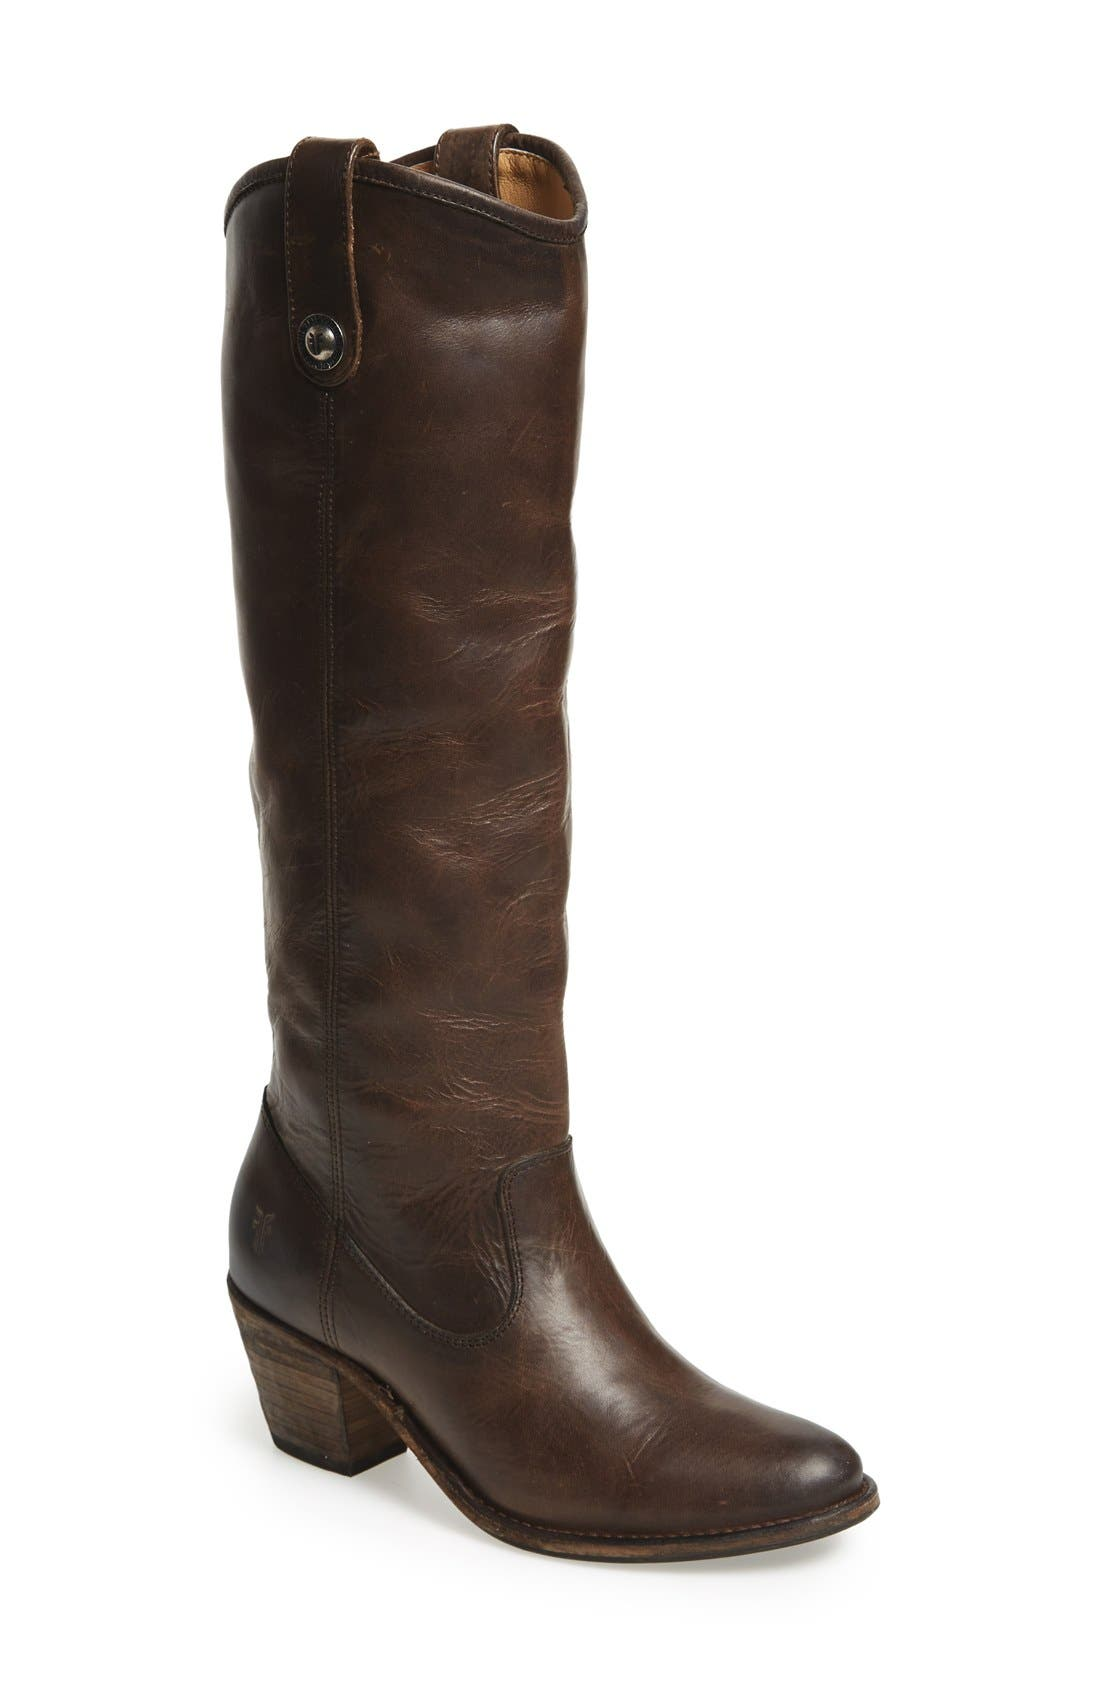 Alternate Image 1 Selected - Frye 'Jackie Button' Tall Boot (Women)